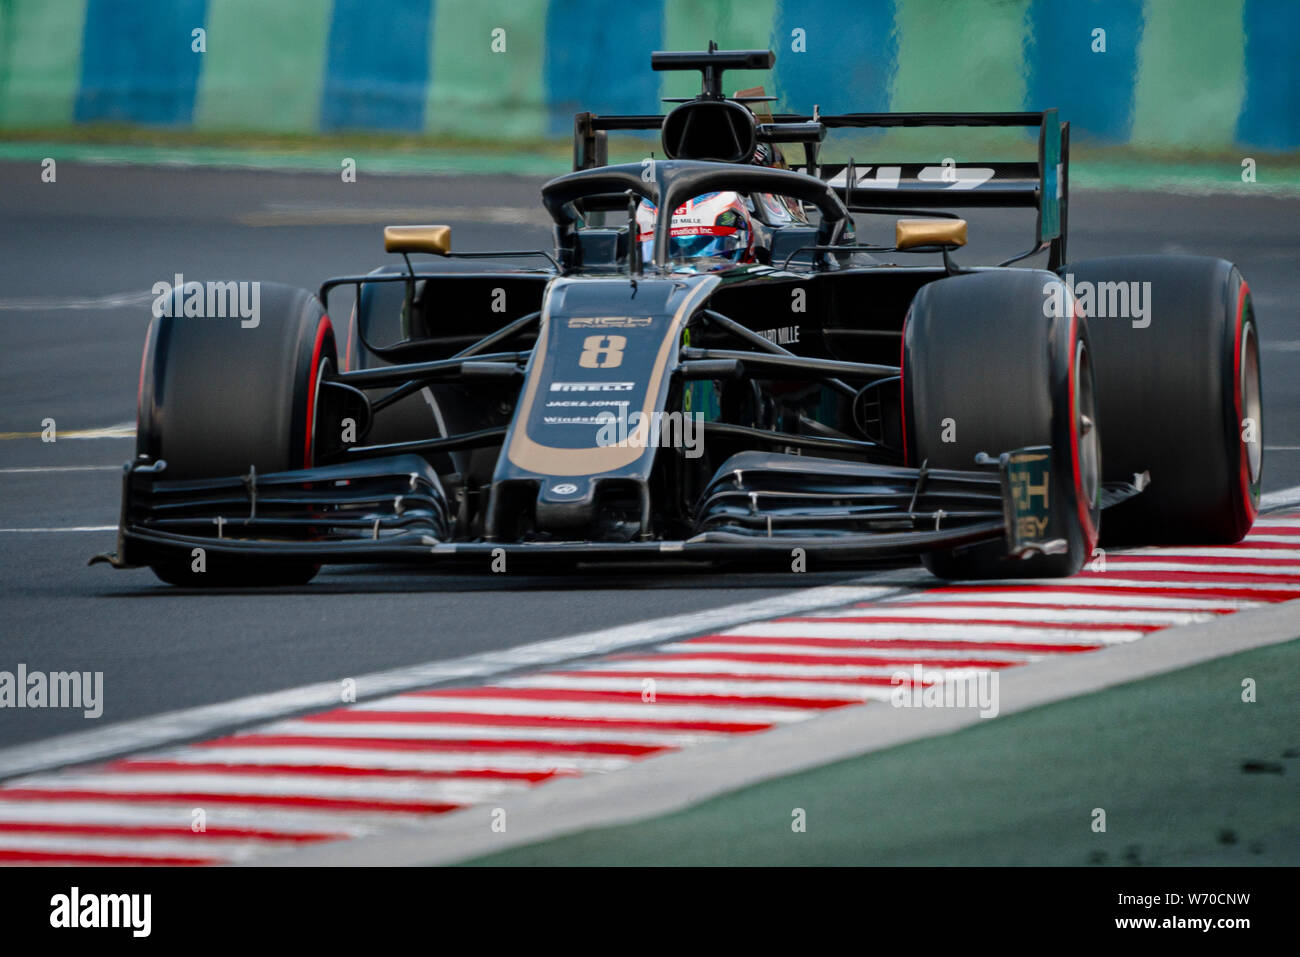 Haas F1 Team's French driver Romain Grosjean competes during the